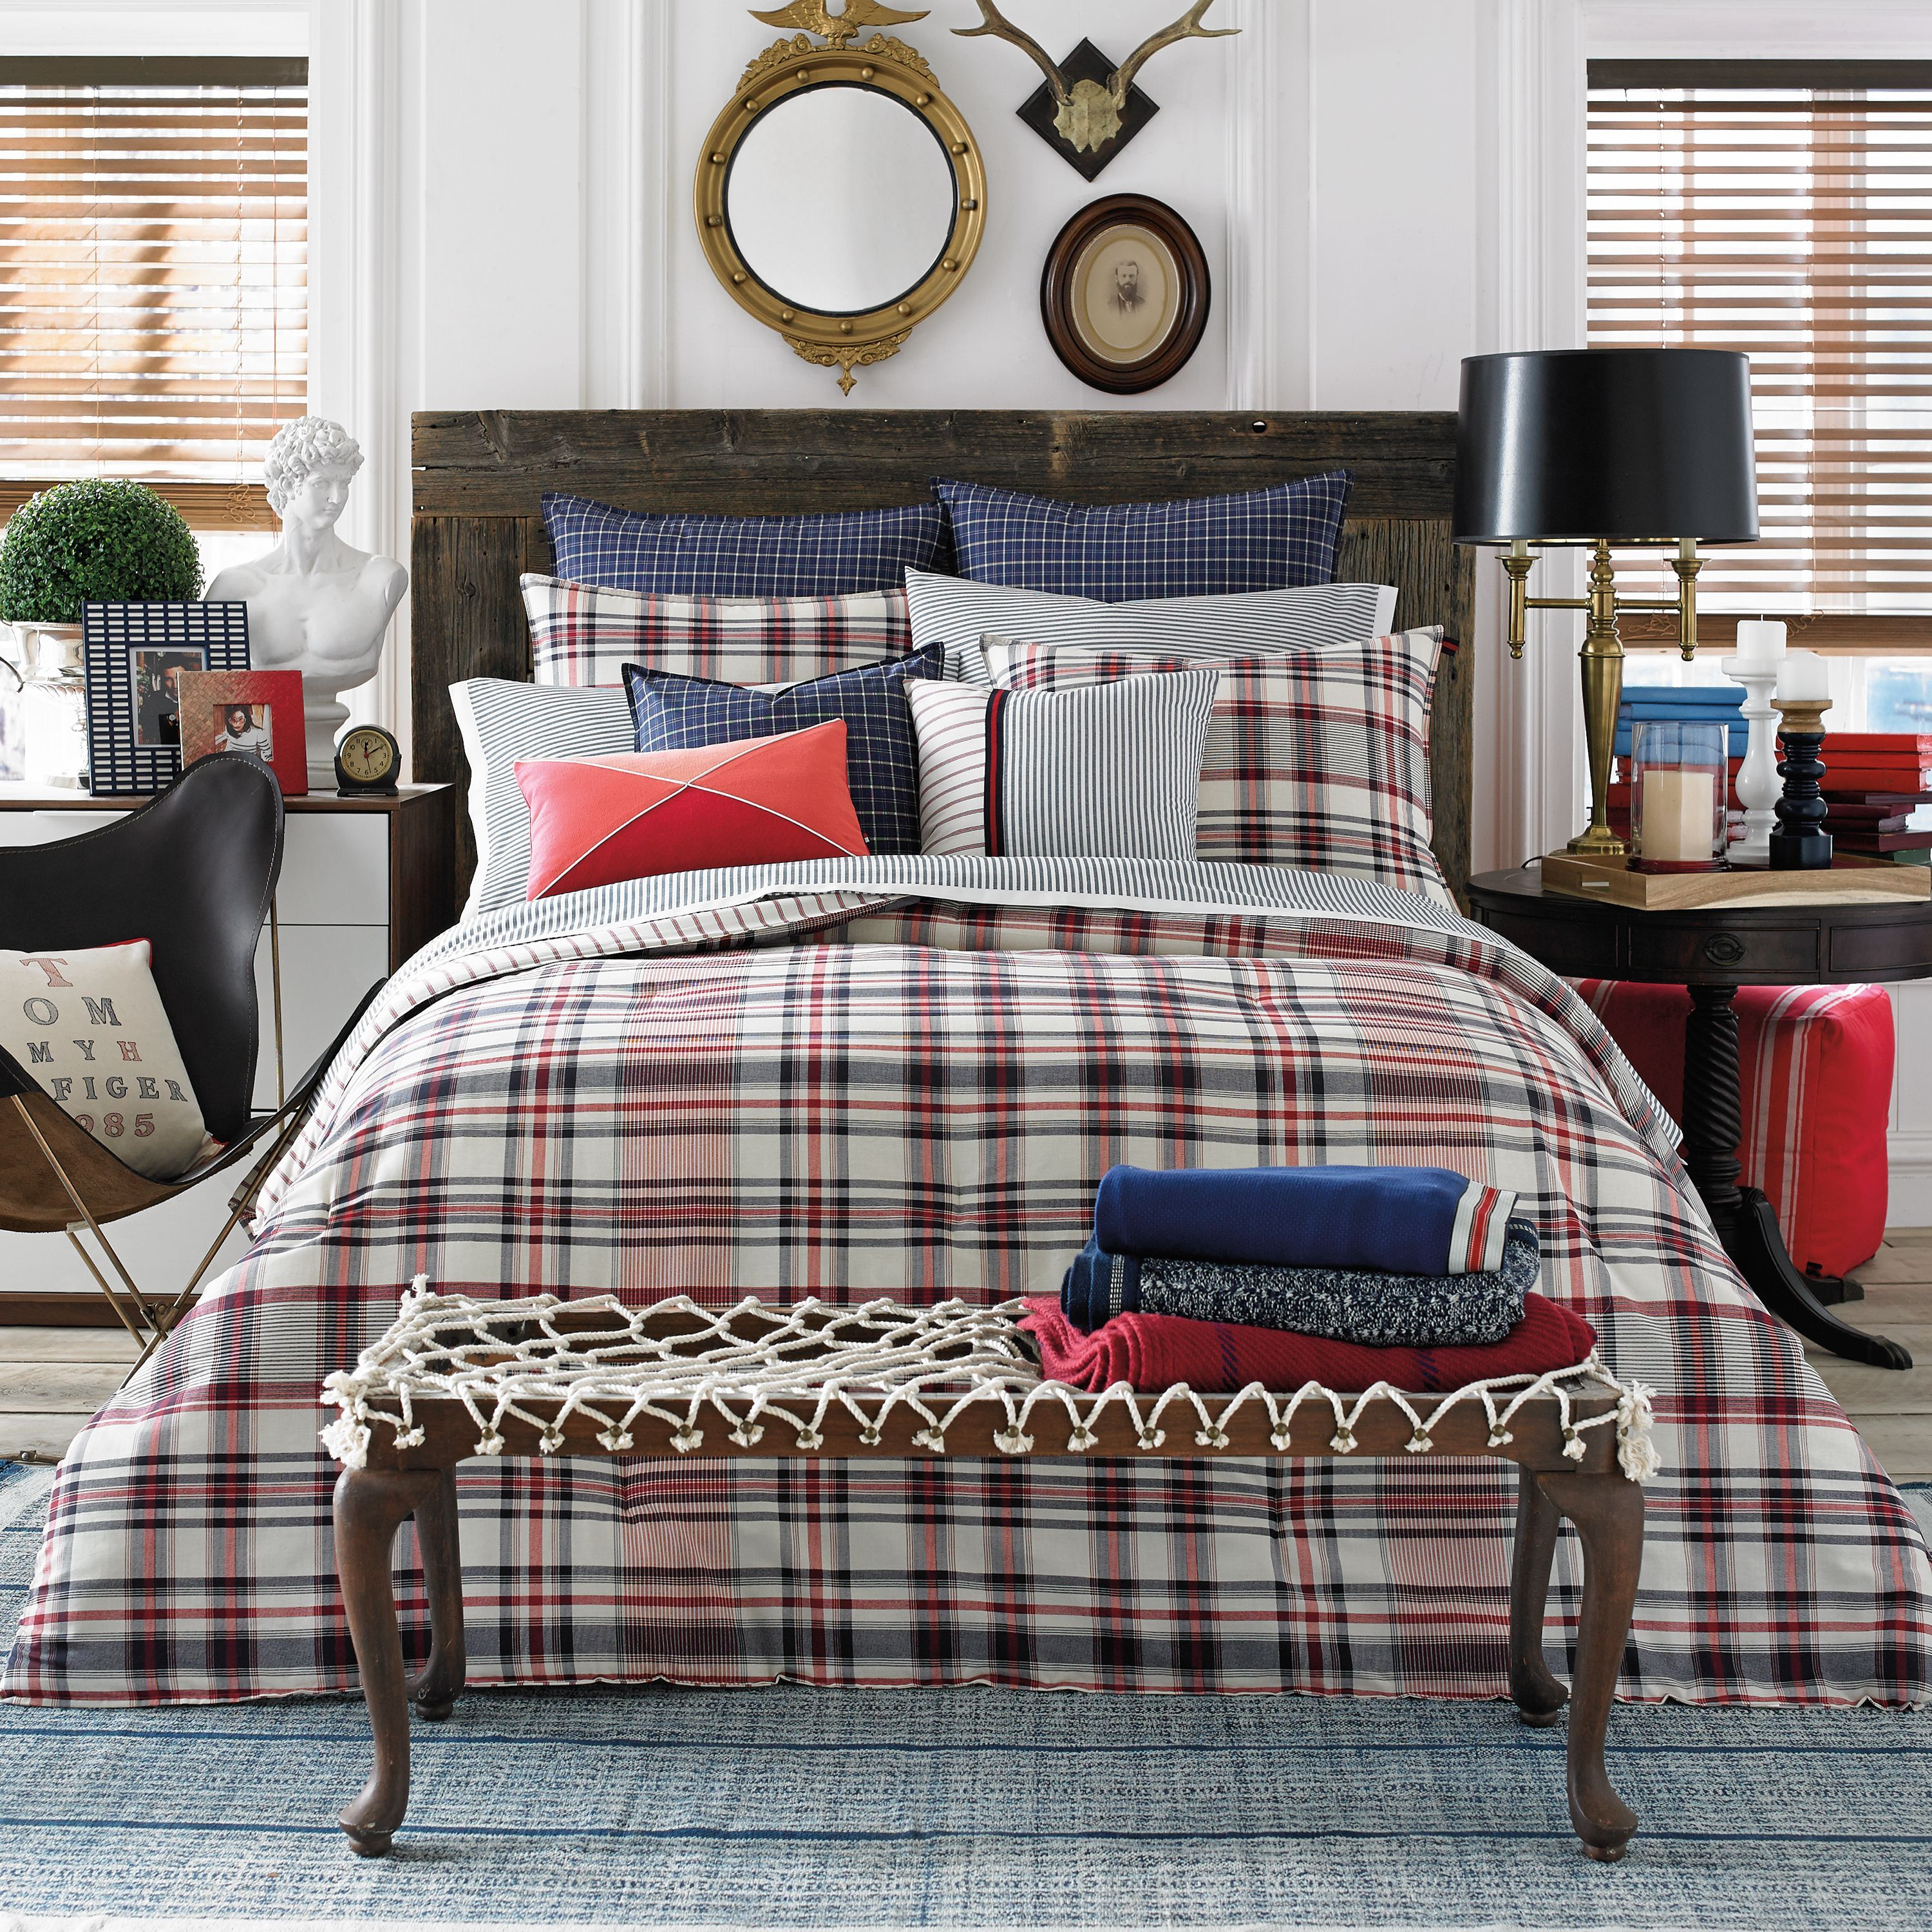 A lovely plaid to dress up your bed in softly woven cotton the